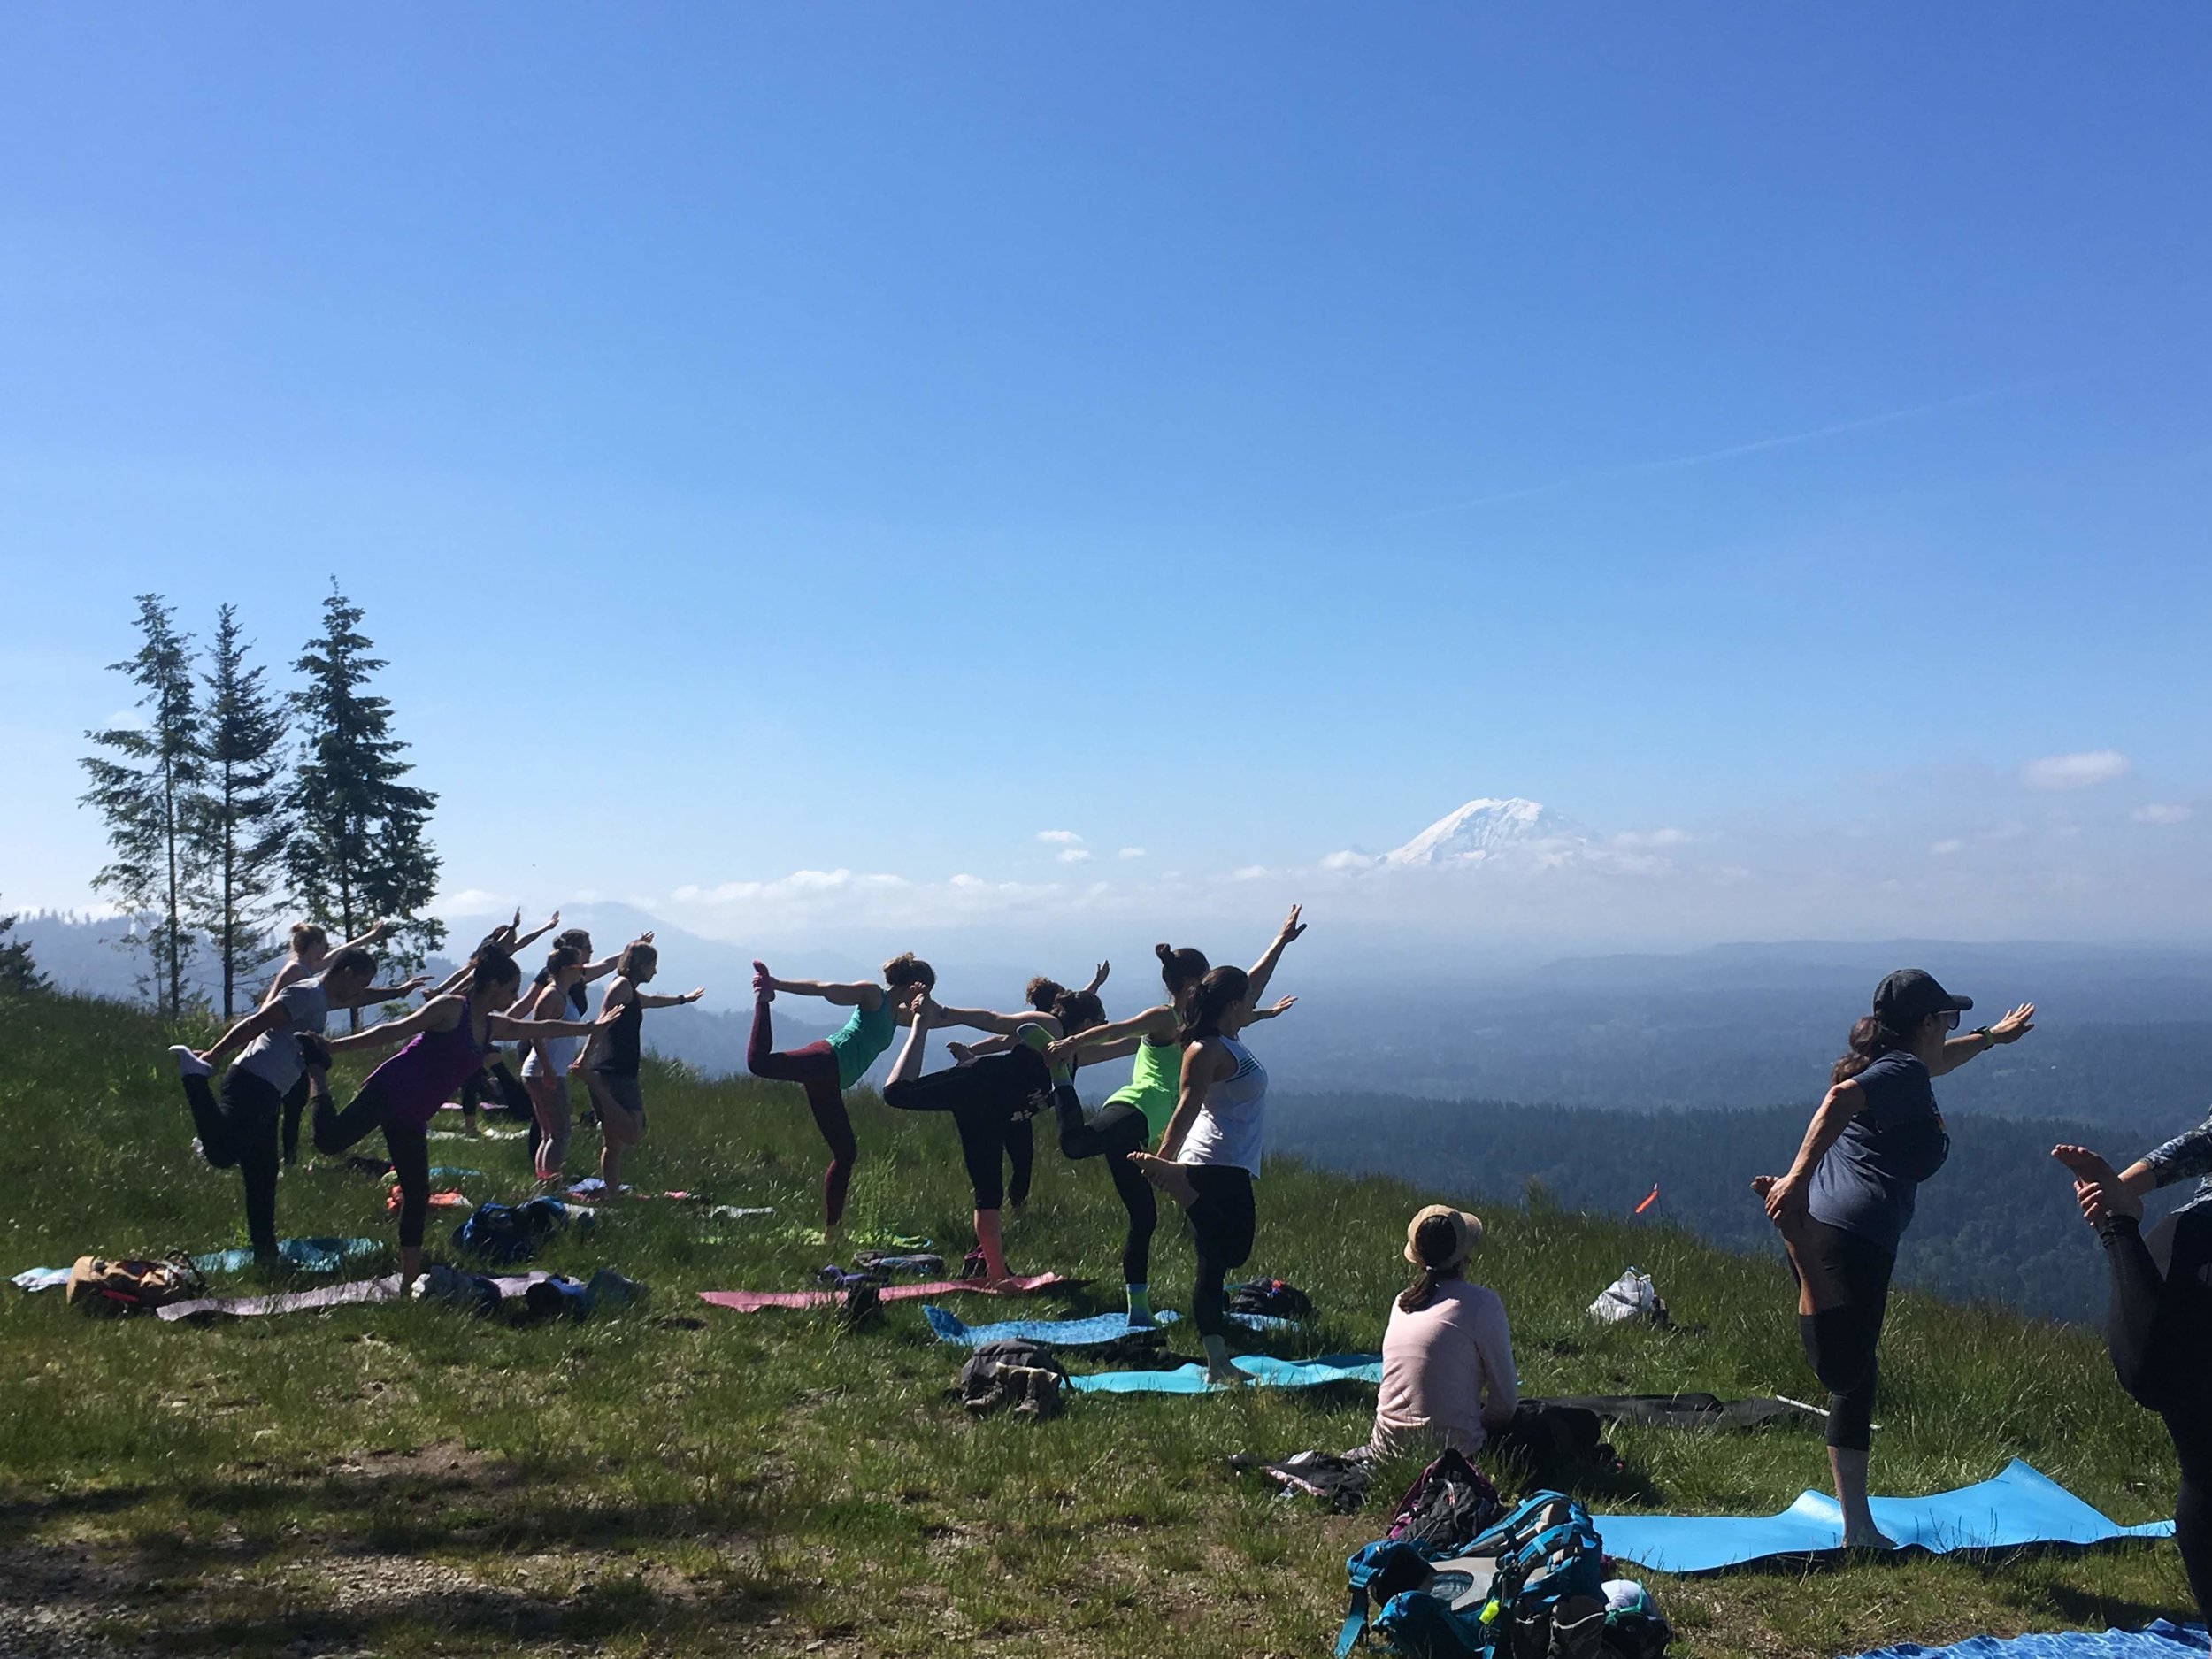 The view from Poo Poo Point feat. some flexible people